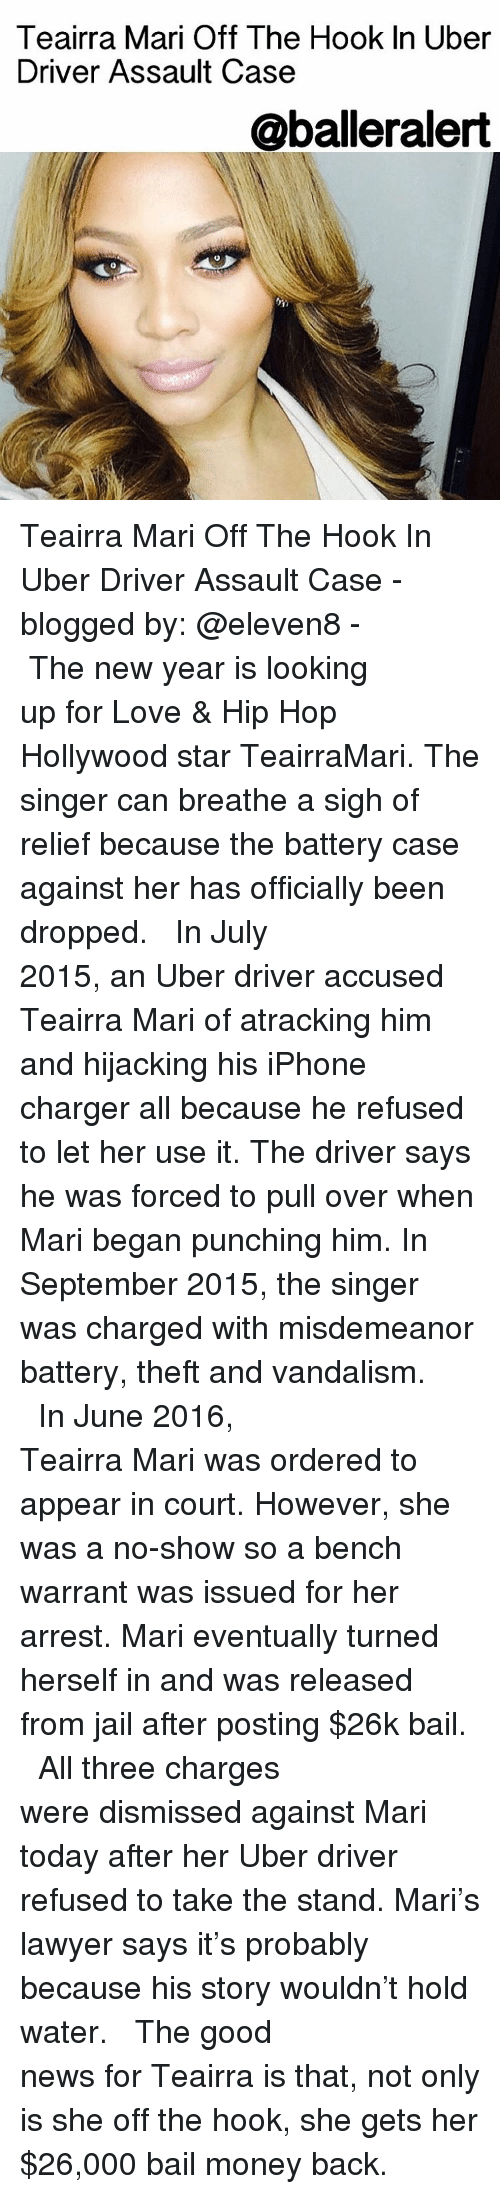 Vandalizers: Teairra Mari  Off The Hook In Uber  Driver Assault Case  @balleralert Teairra Mari Off The Hook In Uber Driver Assault Case - blogged by: @eleven8 - ⠀⠀⠀⠀⠀⠀⠀⠀⠀ ⠀⠀⠀⠀⠀⠀⠀⠀⠀ The new year is looking up for Love & Hip Hop Hollywood star TeairraMari. The singer can breathe a sigh of relief because the battery case against her has officially been dropped. ⠀⠀⠀⠀⠀⠀⠀⠀⠀ ⠀⠀⠀⠀⠀⠀⠀⠀⠀ In July 2015, an Uber driver accused Teairra Mari of atracking him and hijacking his iPhone charger all because he refused to let her use it. The driver says he was forced to pull over when Mari began punching him. In September 2015, the singer was charged with misdemeanor battery, theft and vandalism. ⠀⠀⠀⠀⠀⠀⠀⠀⠀ ⠀⠀⠀⠀⠀⠀⠀⠀⠀ In June 2016, Teairra Mari was ordered to appear in court. However, she was a no-show so a bench warrant was issued for her arrest. Mari eventually turned herself in and was released from jail after posting $26k bail. ⠀⠀⠀⠀⠀⠀⠀⠀⠀ ⠀⠀⠀⠀⠀⠀⠀⠀⠀ All three charges were dismissed against Mari today after her Uber driver refused to take the stand. Mari's lawyer says it's probably because his story wouldn't hold water. ⠀⠀⠀⠀⠀⠀⠀⠀⠀ ⠀⠀⠀⠀⠀⠀⠀⠀⠀ The good news for Teairra is that, not only is she off the hook, she gets her $26,000 bail money back.